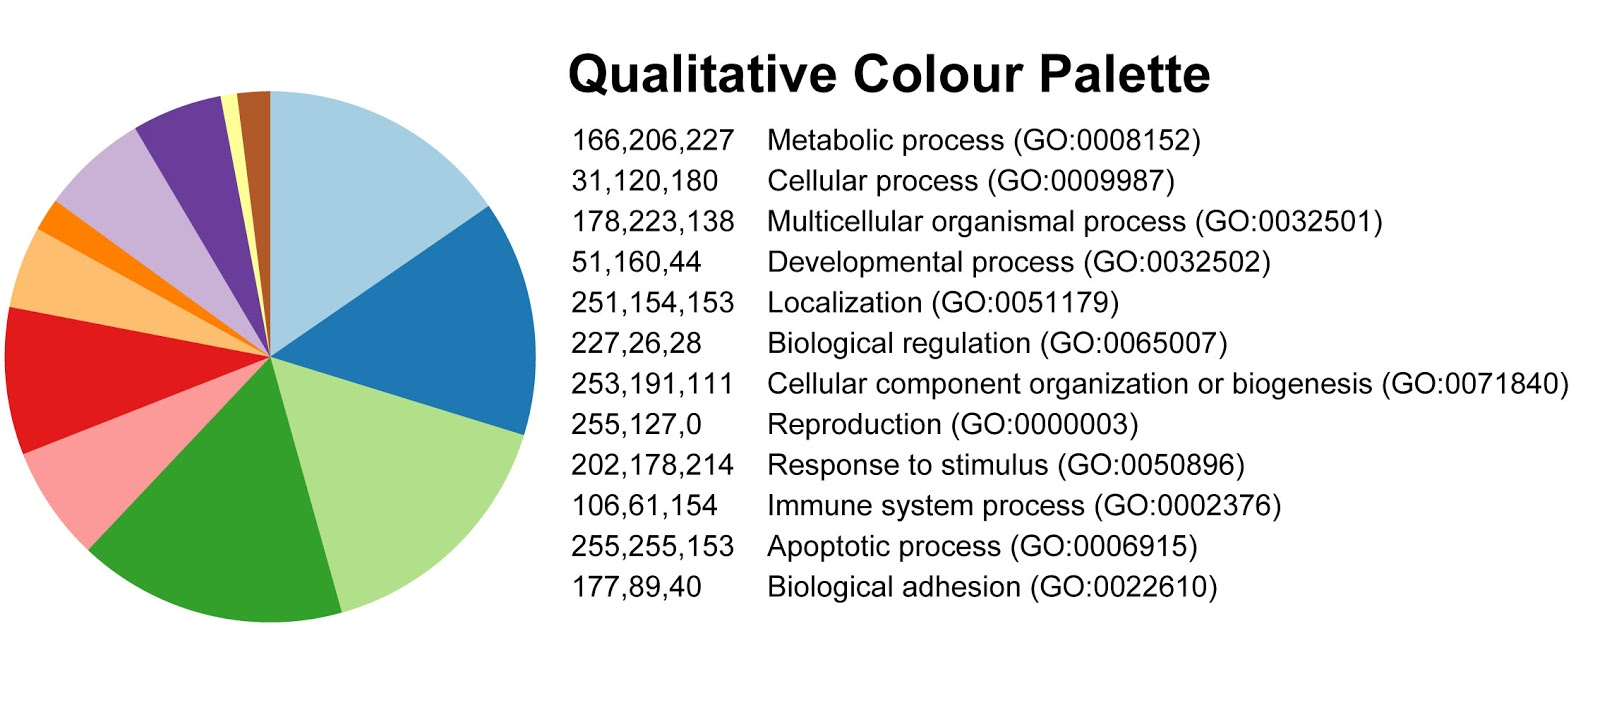 Nina riddell brewer colour palettes for data visualization i was creating the pie charts in excel so i entered the rgb values directly in chart tools i now use this chart template all the time nvjuhfo Images